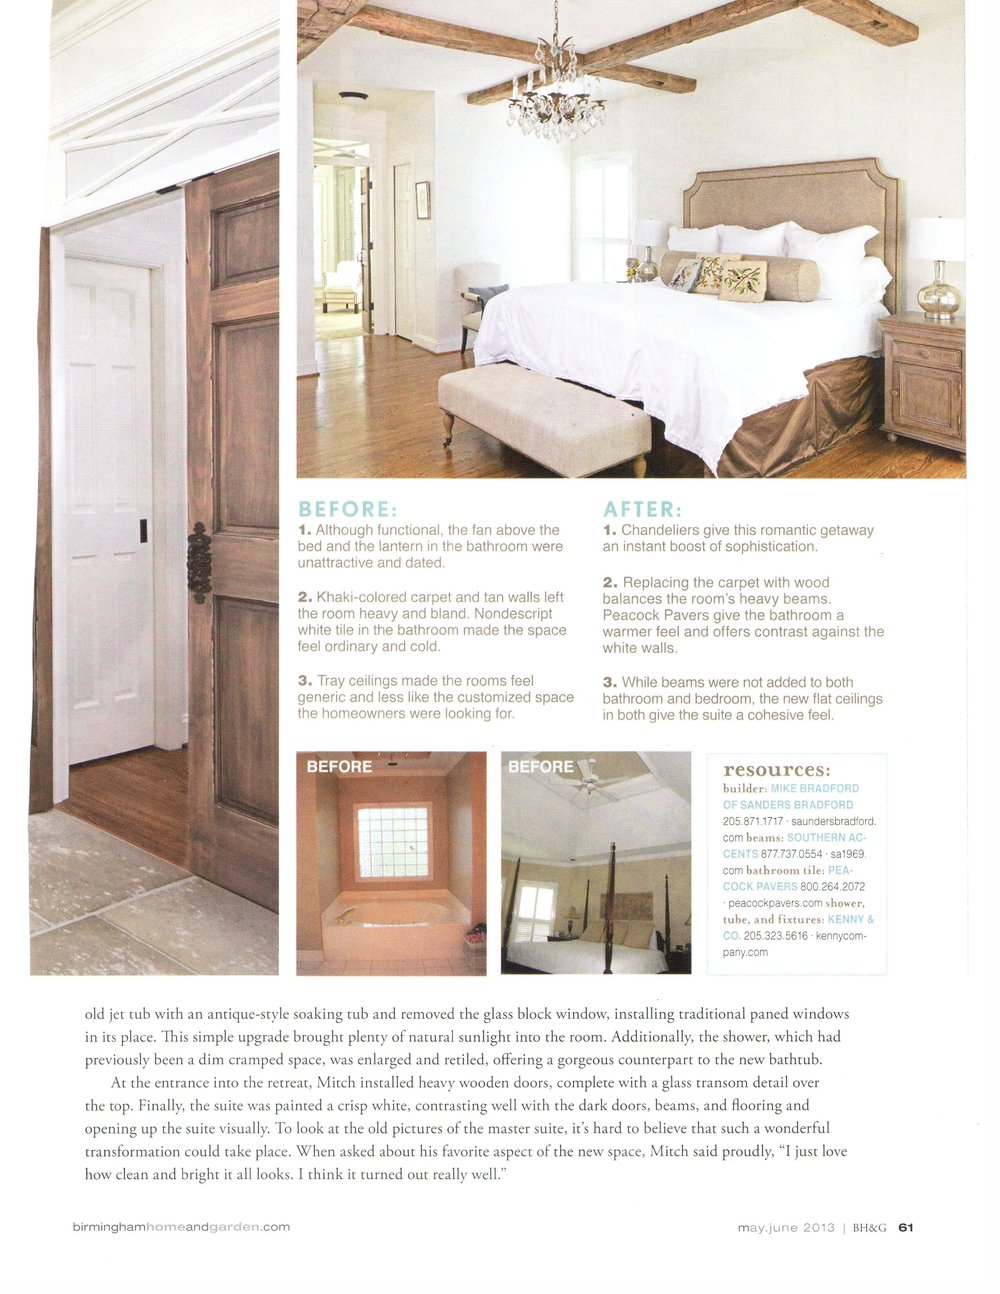 B'Ham Home & Garden Suite Upgrade magazine page 6 architecture exterior and interior design Alabama